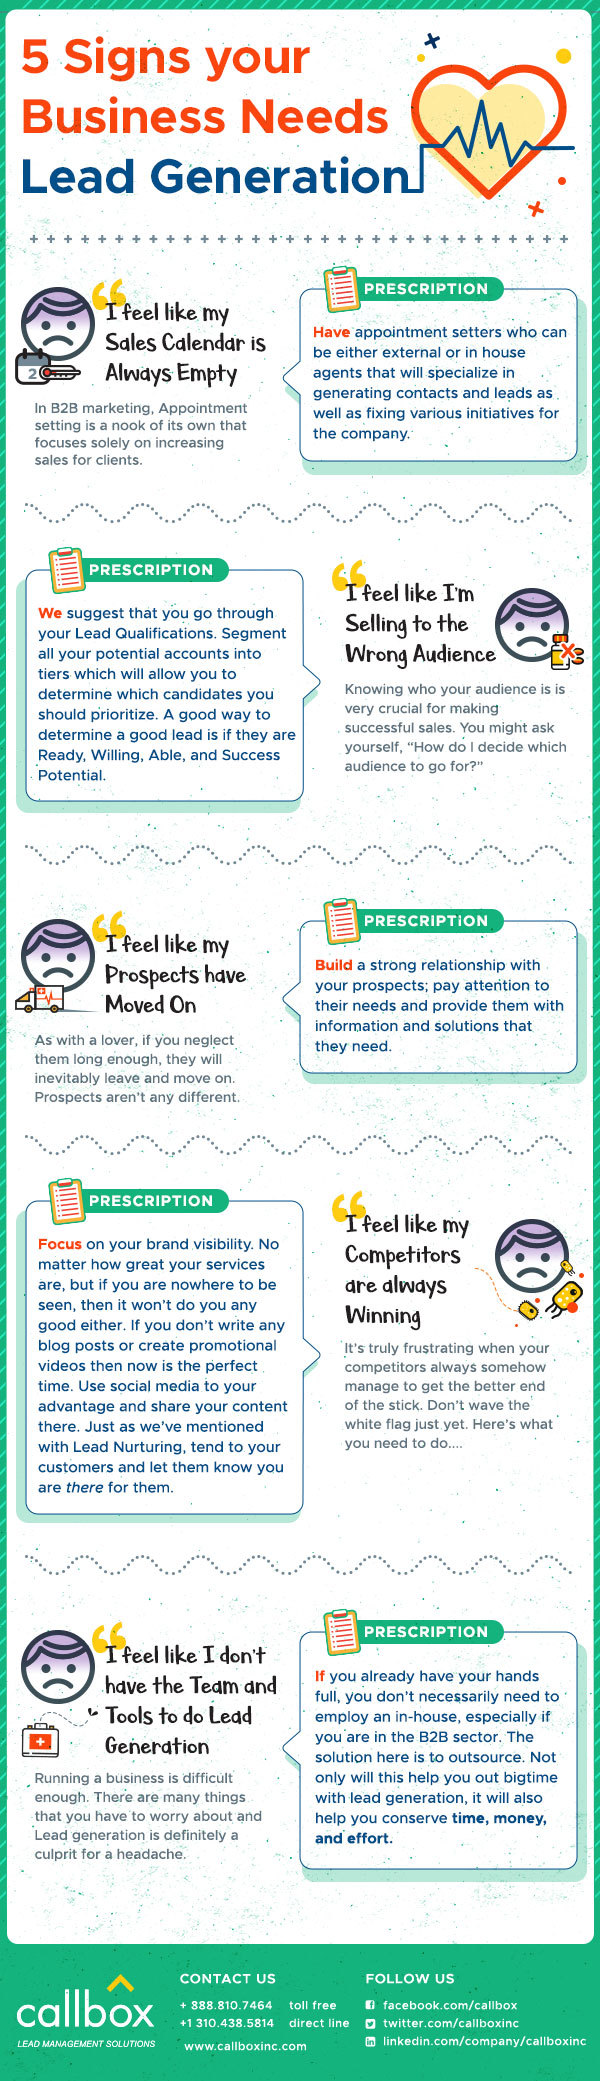 5 Signs Your Business Needs Lead Generation [INFOGRAPHIC]